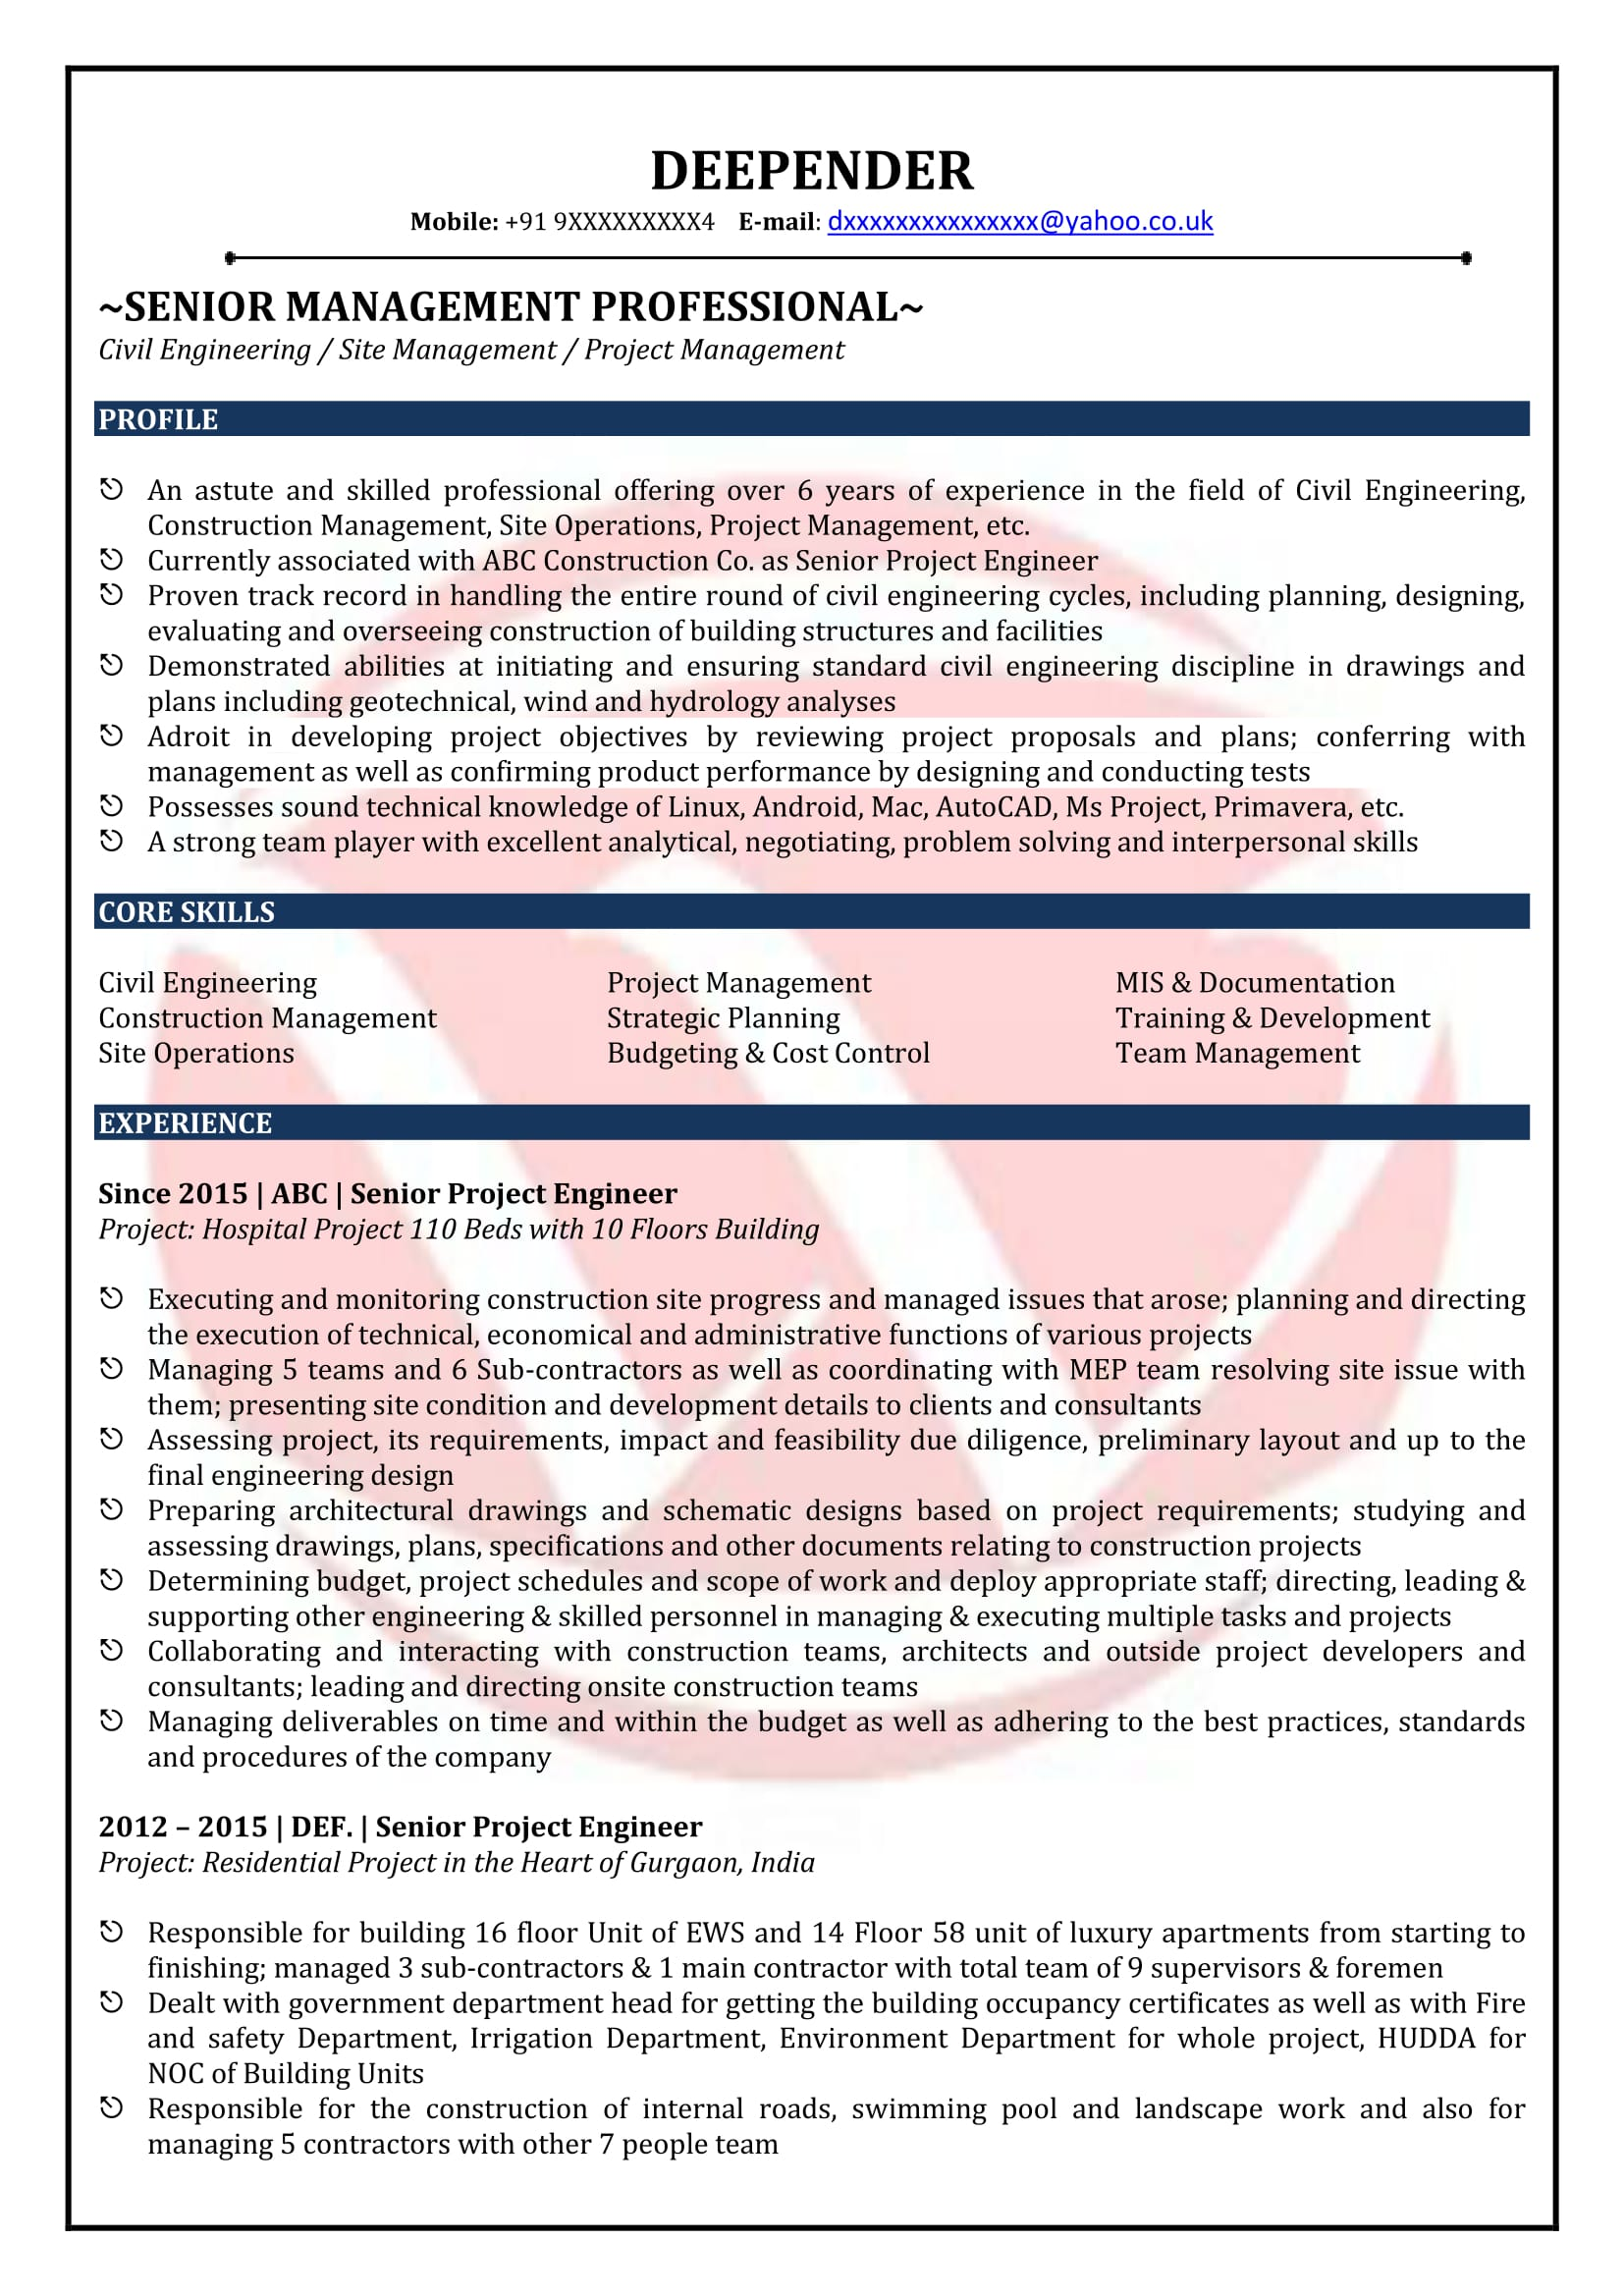 Resume Format For Freshers Civil Engineers World Of